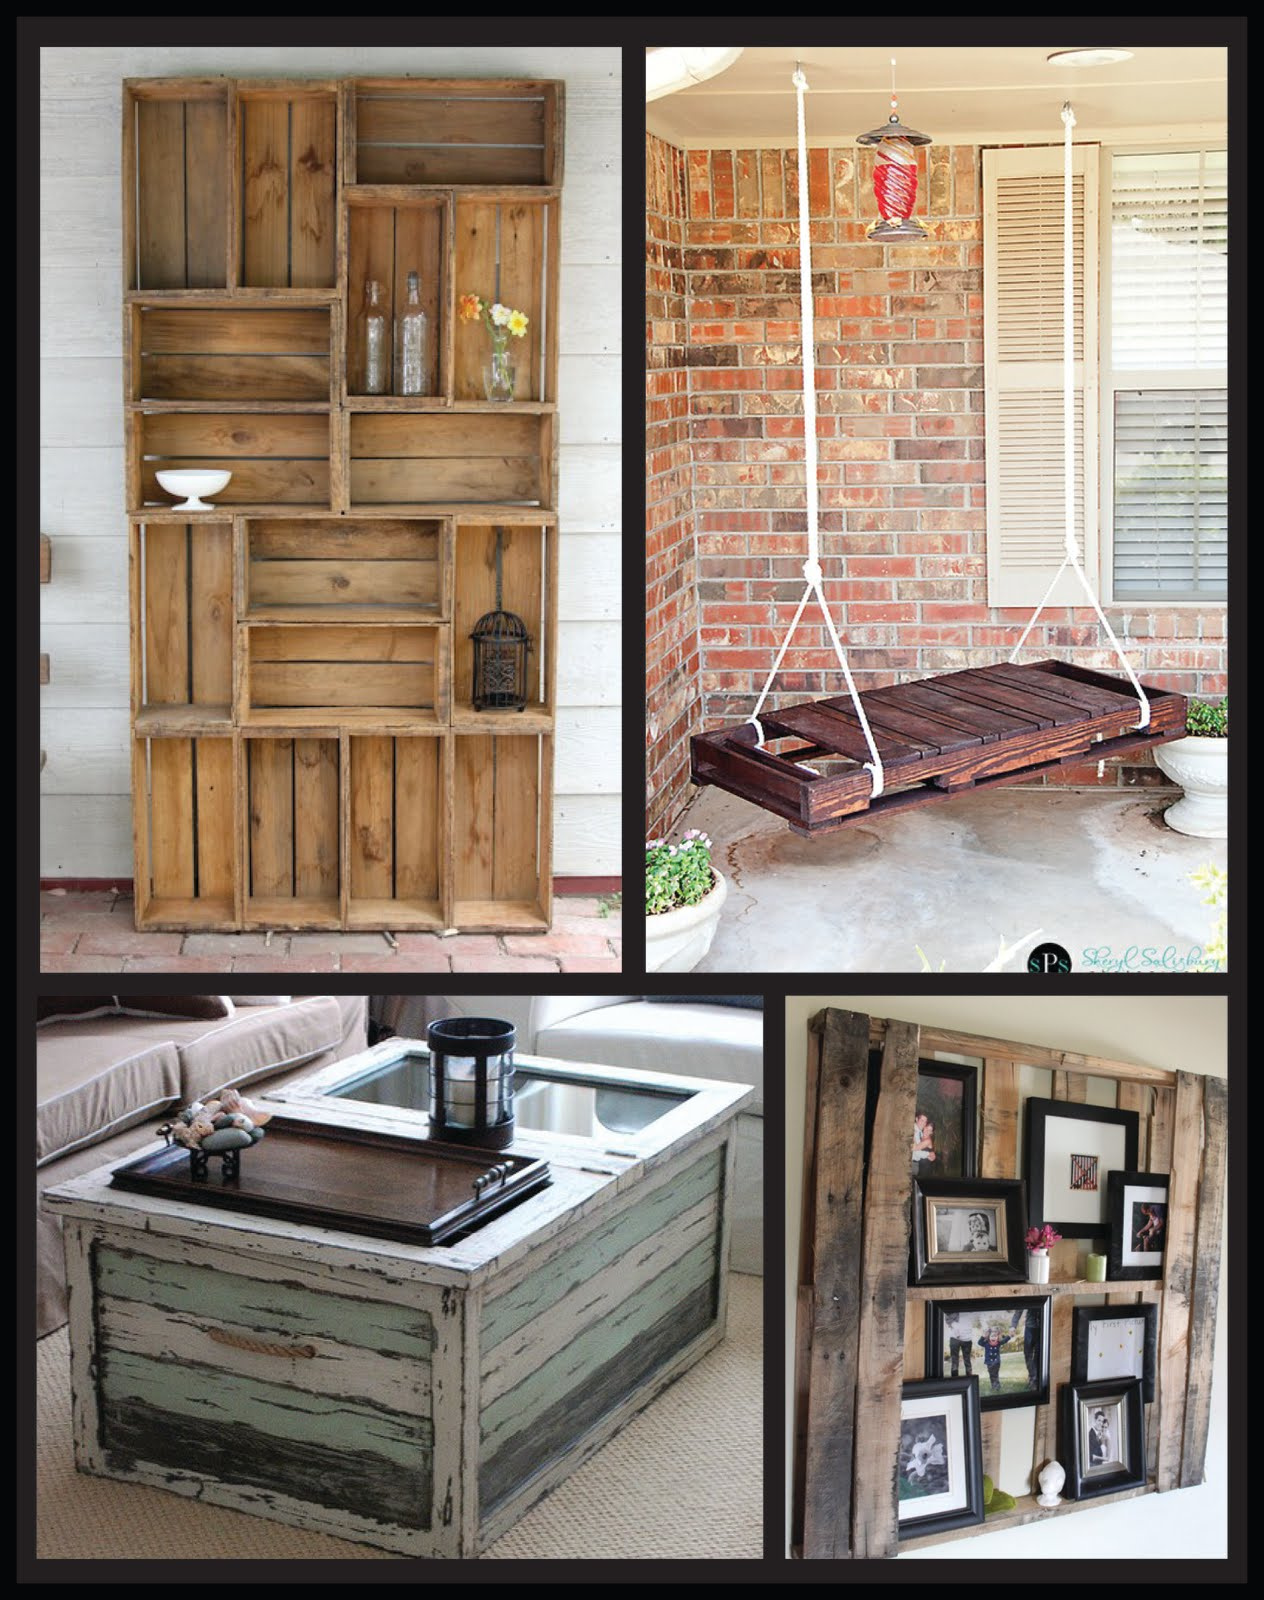 Home office on pinterest window seats bookshelves and wooden crates Wooden crates furniture